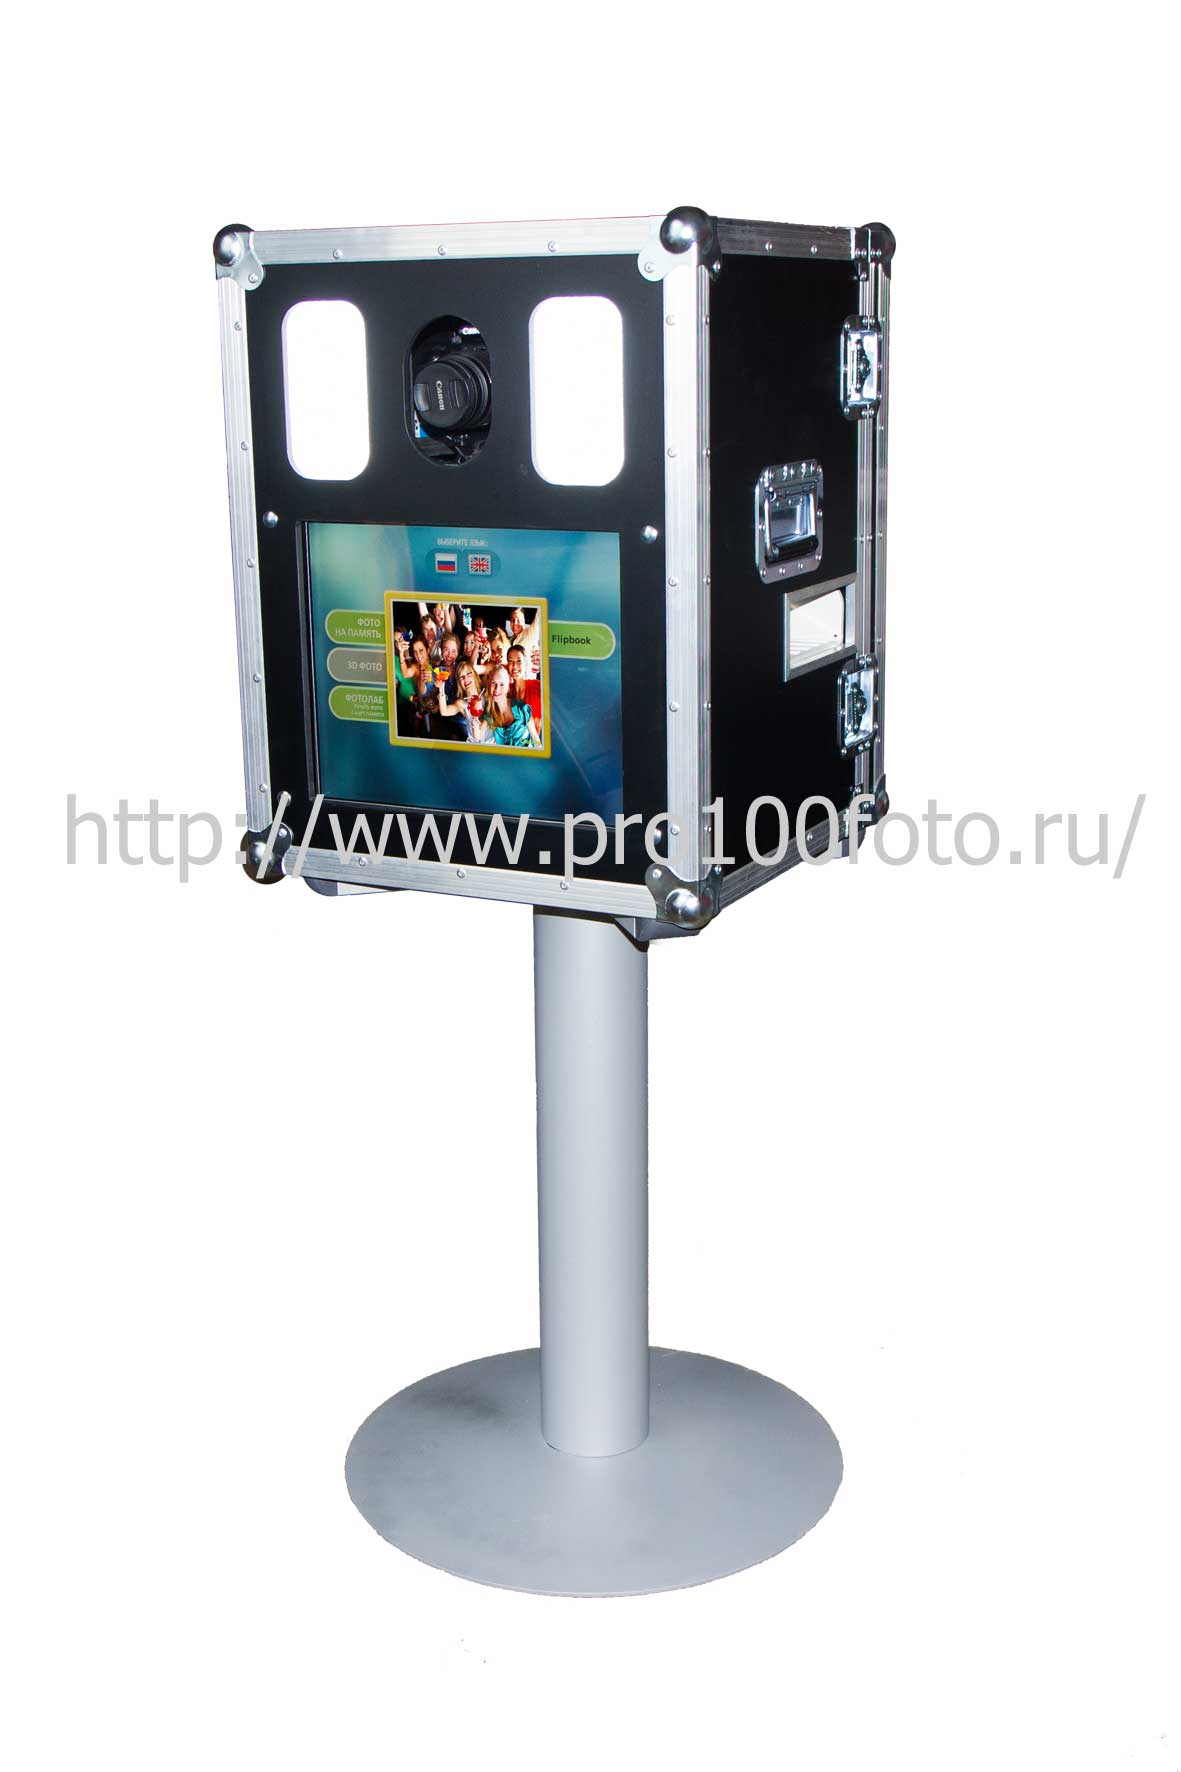 photobox, фотобокс, фотобудка, фотокабинка, photobooth, photo booth, инстапринтер, instaprinter